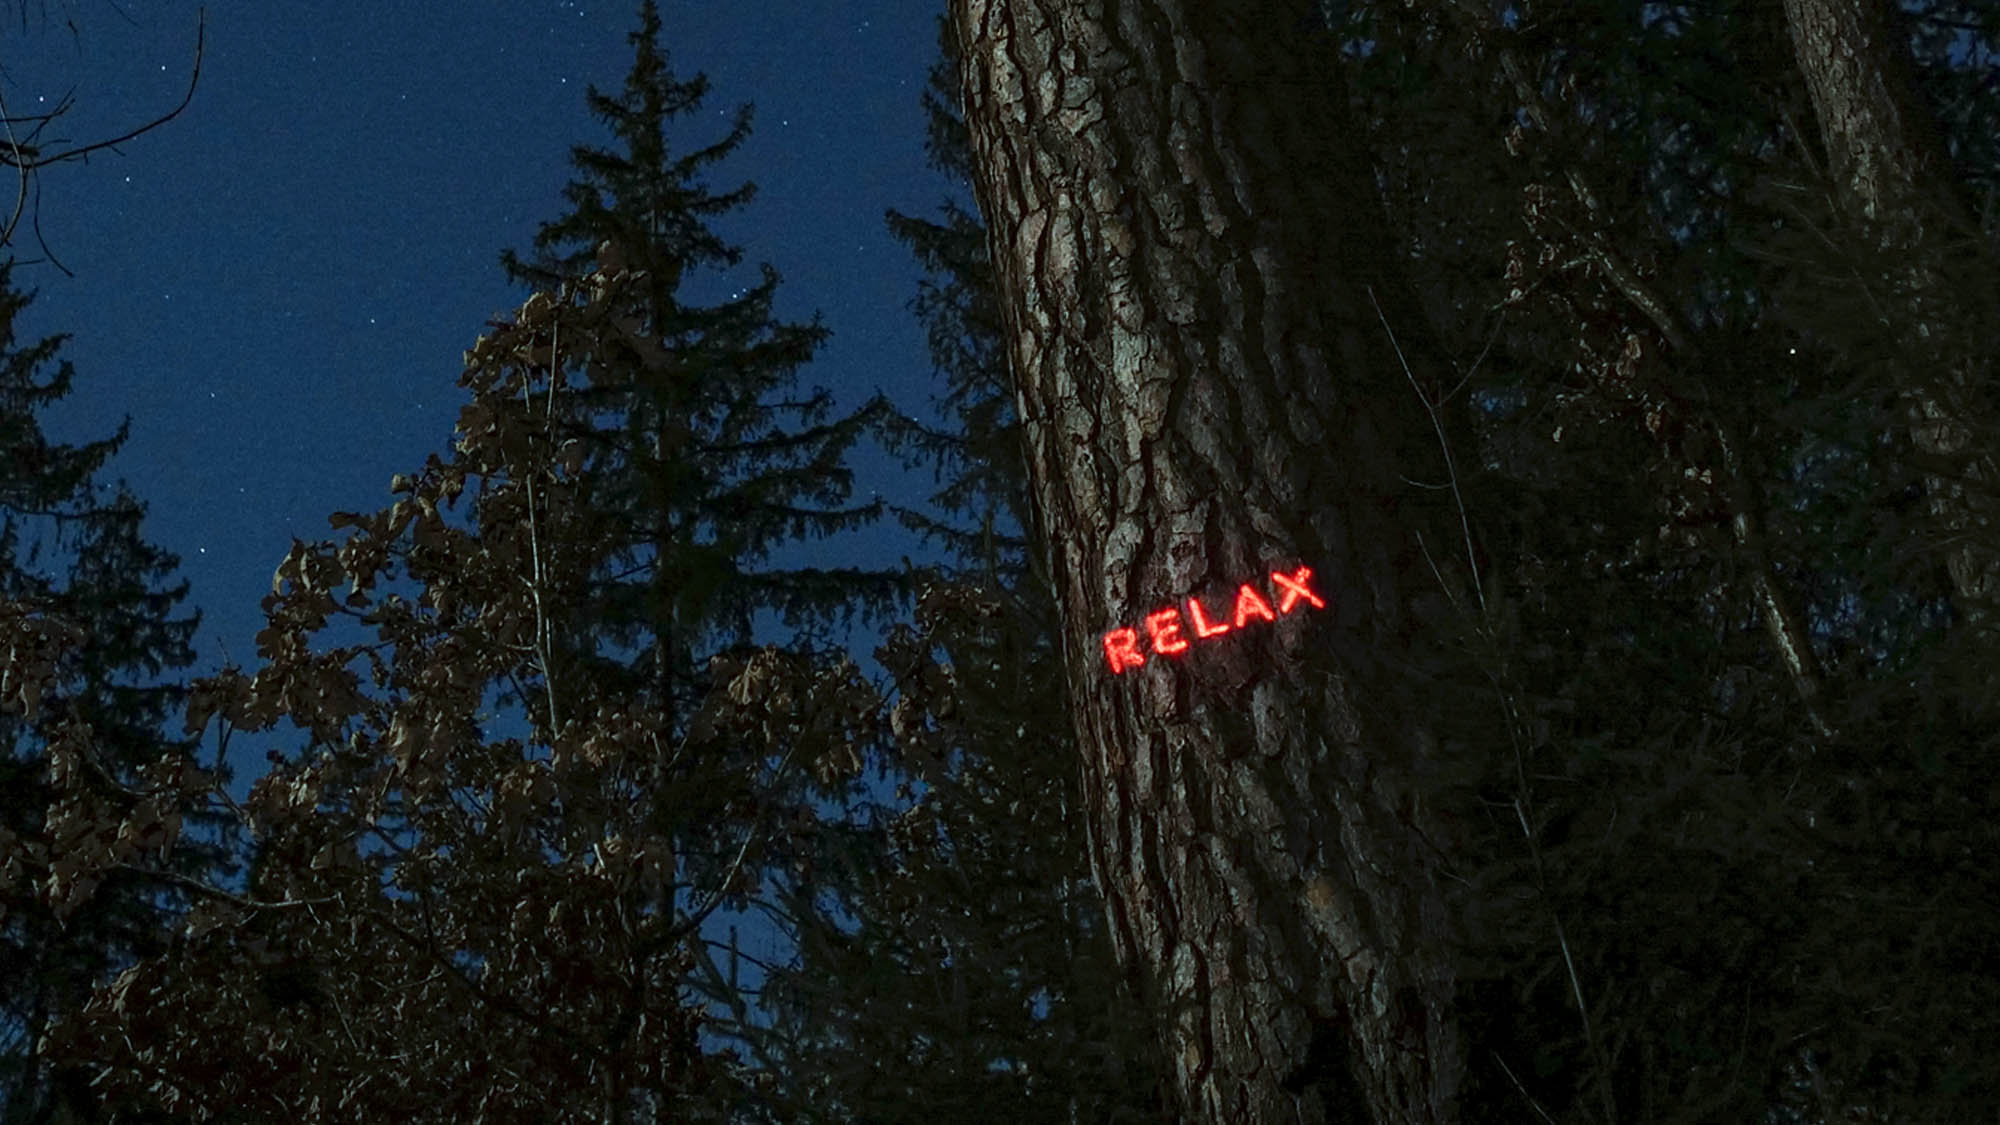 Philipp Frank Philipp Frank -artists- künstler - New media - light art - projection - mapping - installation - in  -nature - art -neon,